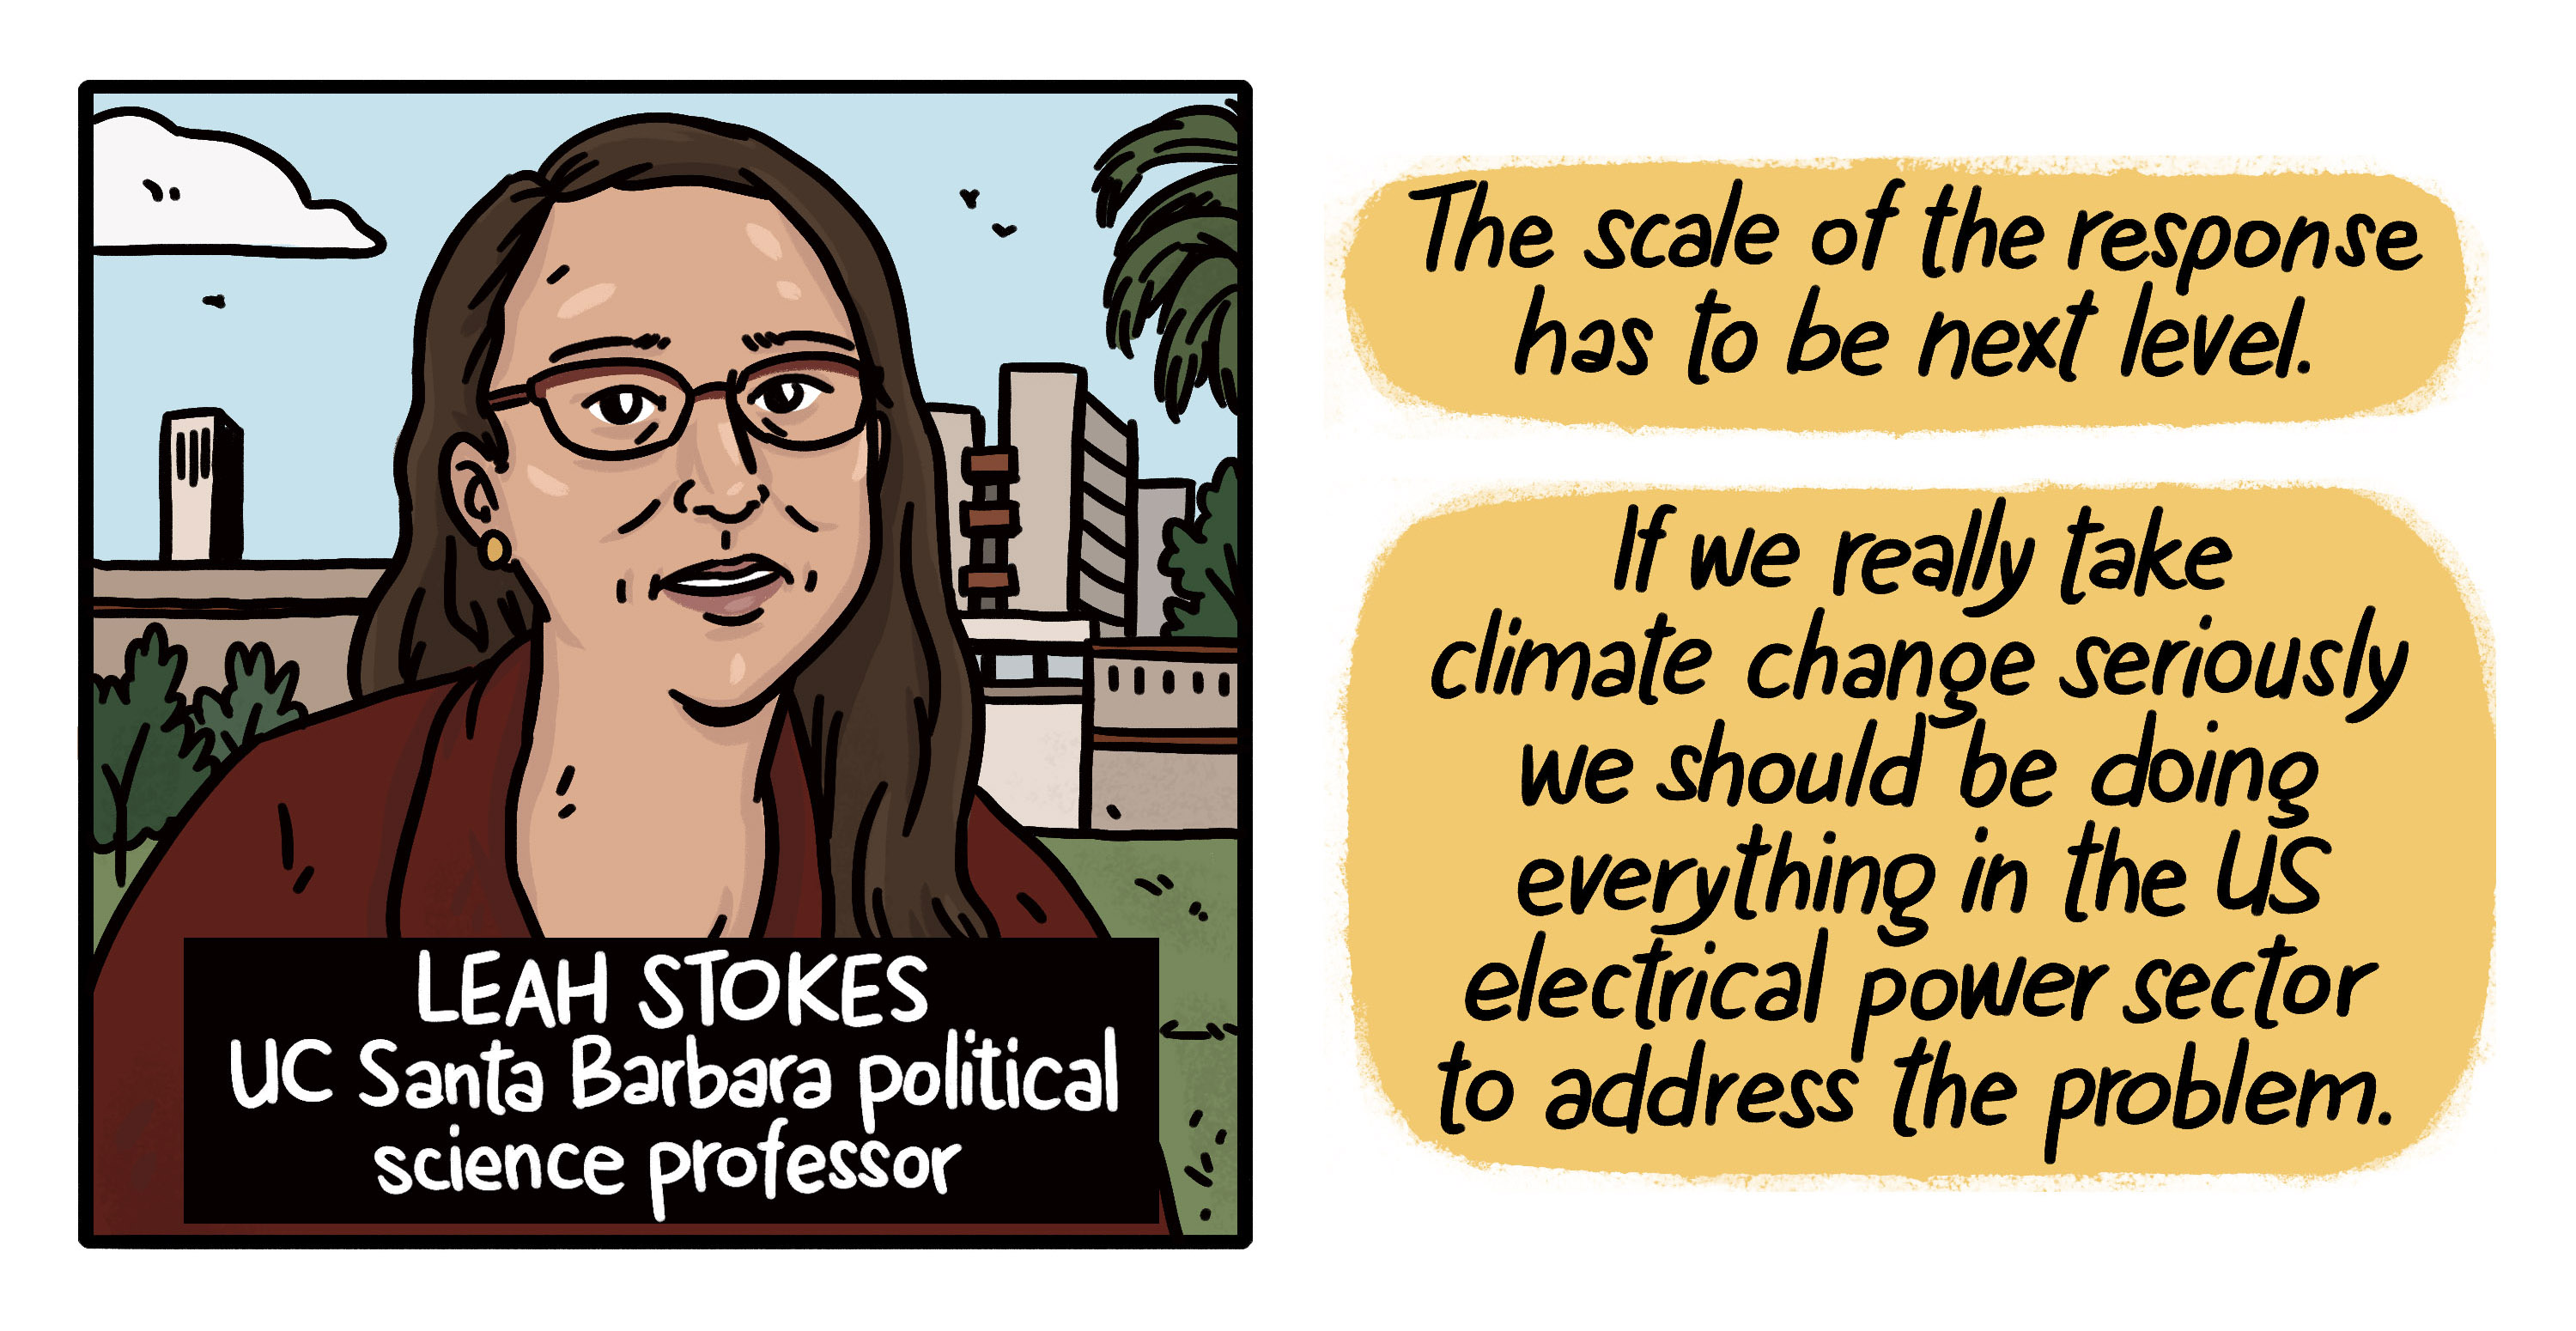 A drawing of UCSB professor Leah Stokes with a quote: